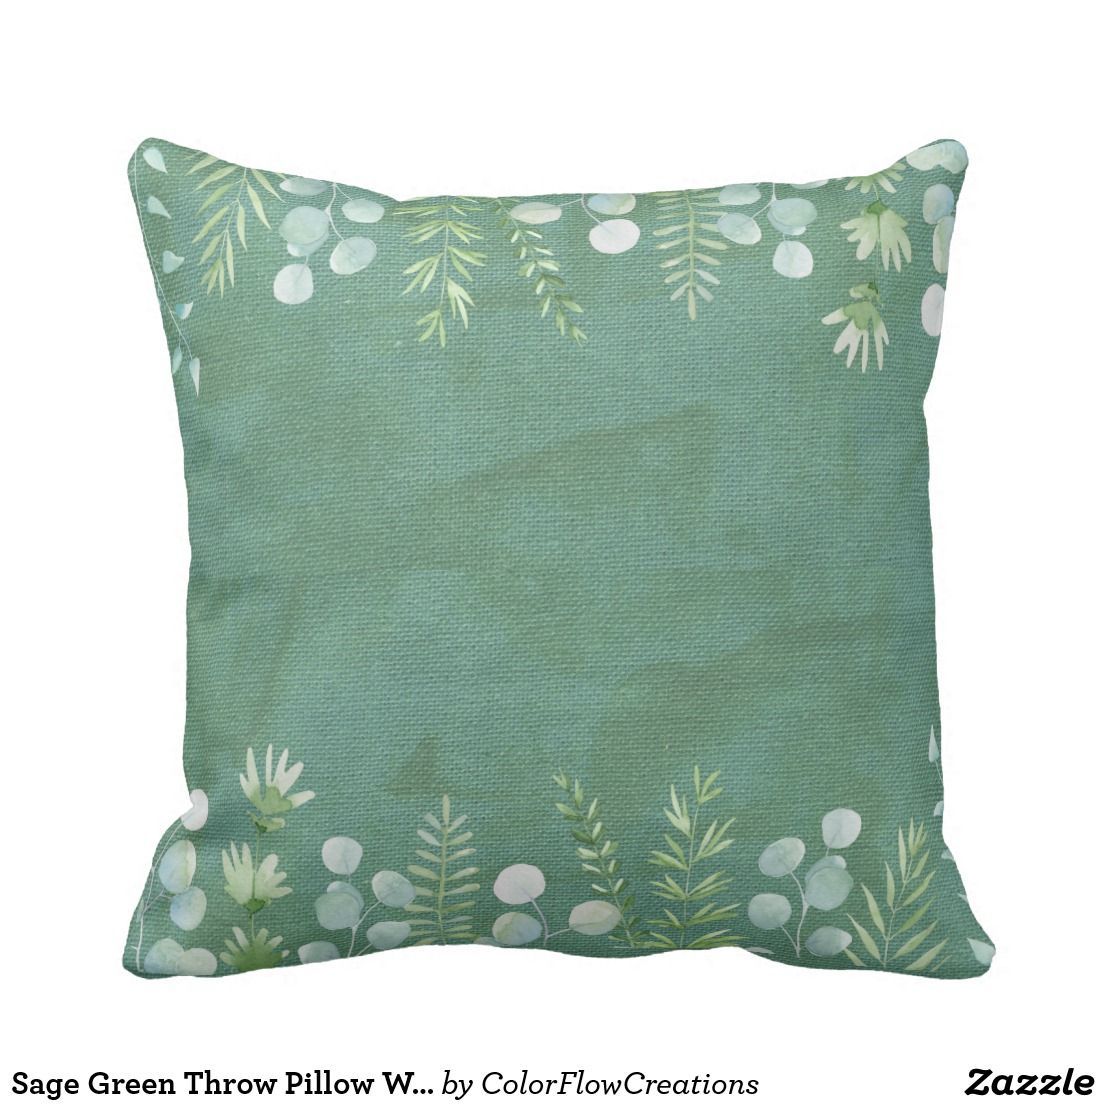 Sage Green Throw Pillow Watercolor Leaves Delicate Zazzle Com Throw Pillows Watercolor Green Throw Pillows Throw Pillows